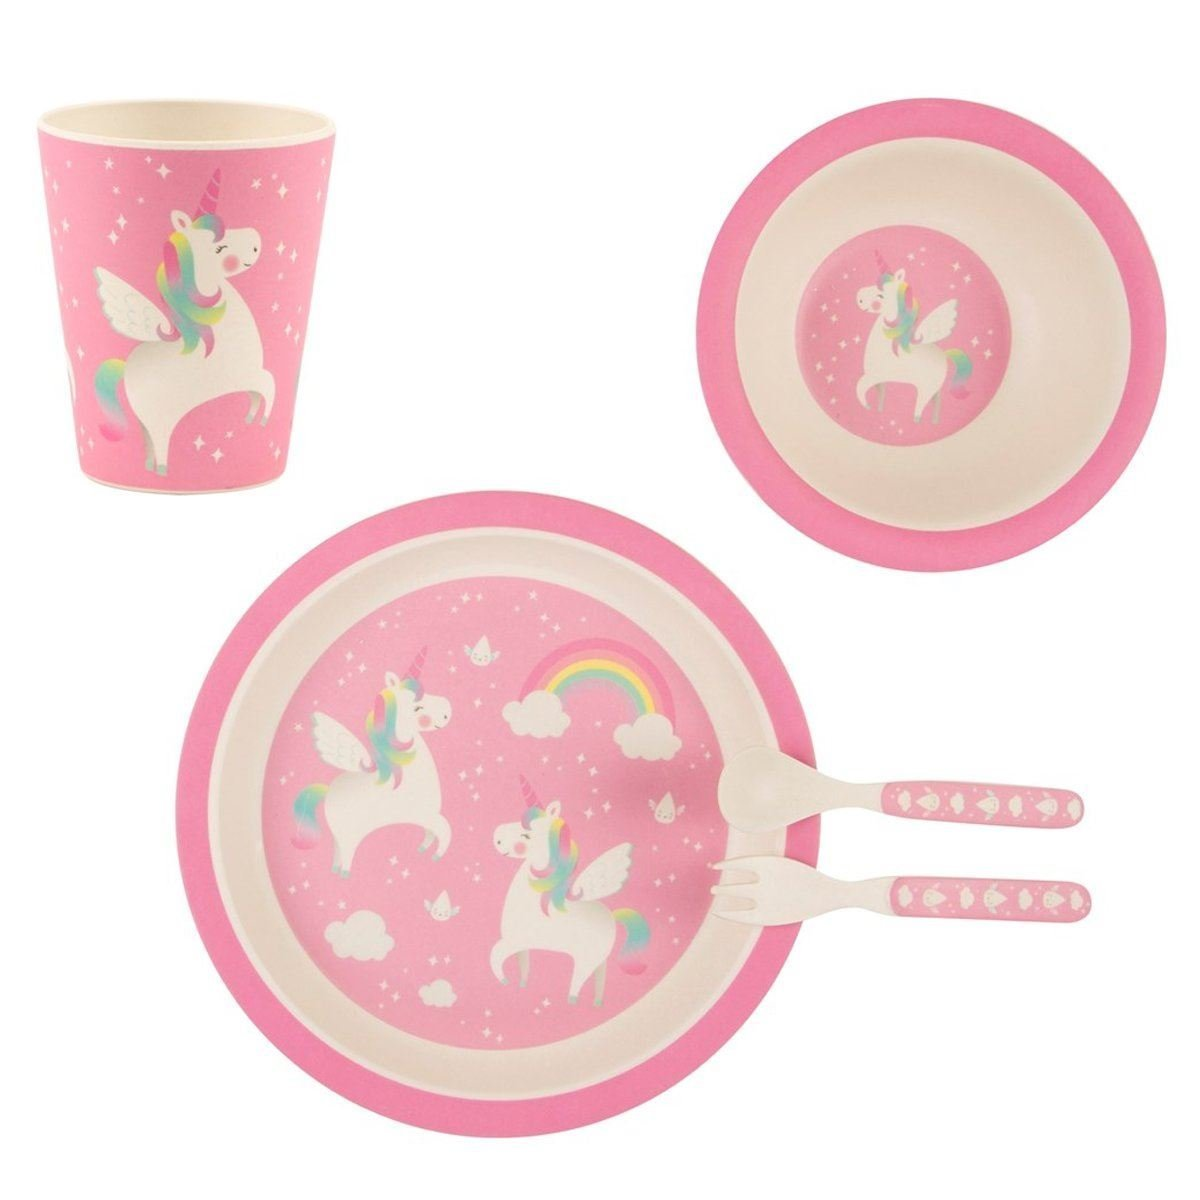 Rainbow Unicorn Bamboo Tableware Set Maia Gifts